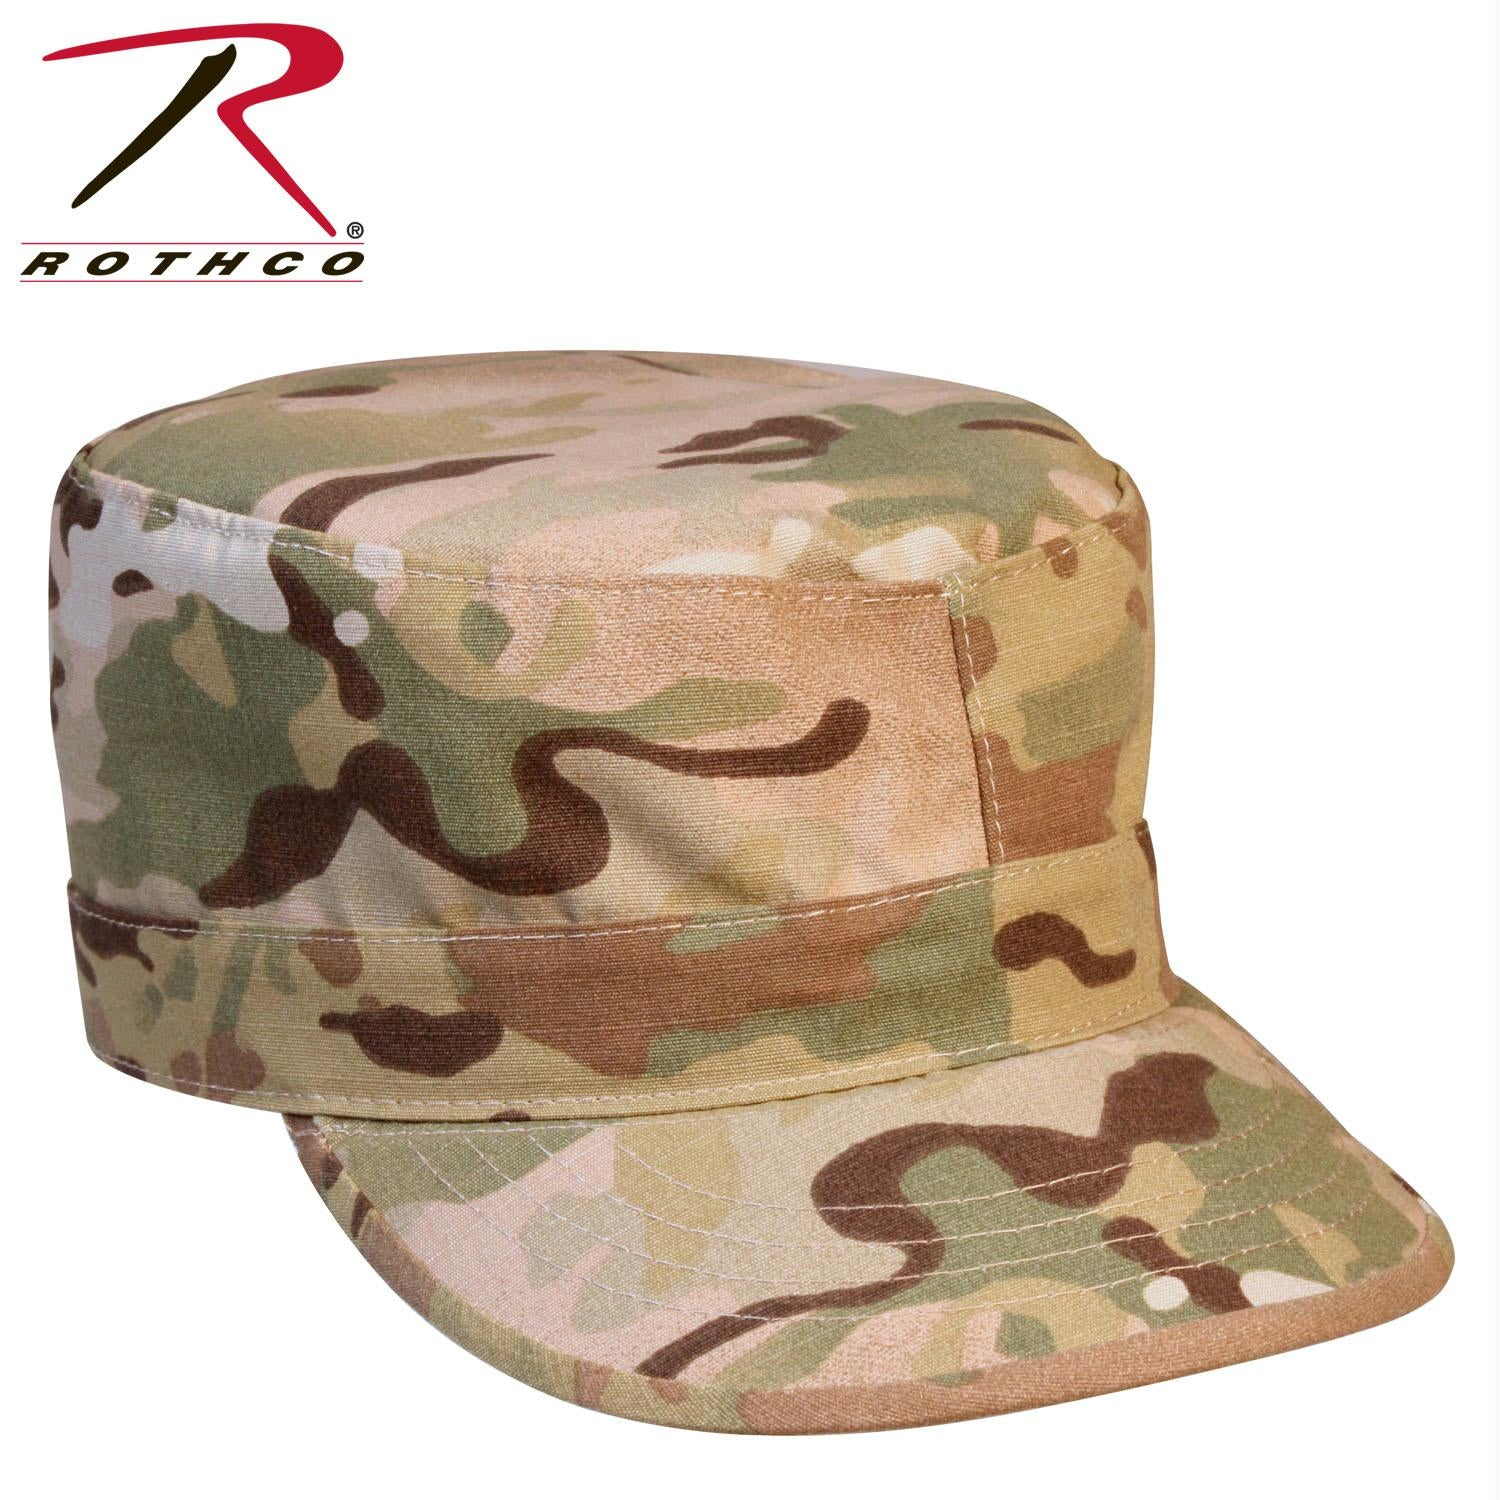 Rothco Multicam Rip-Stop Fatigue Cap